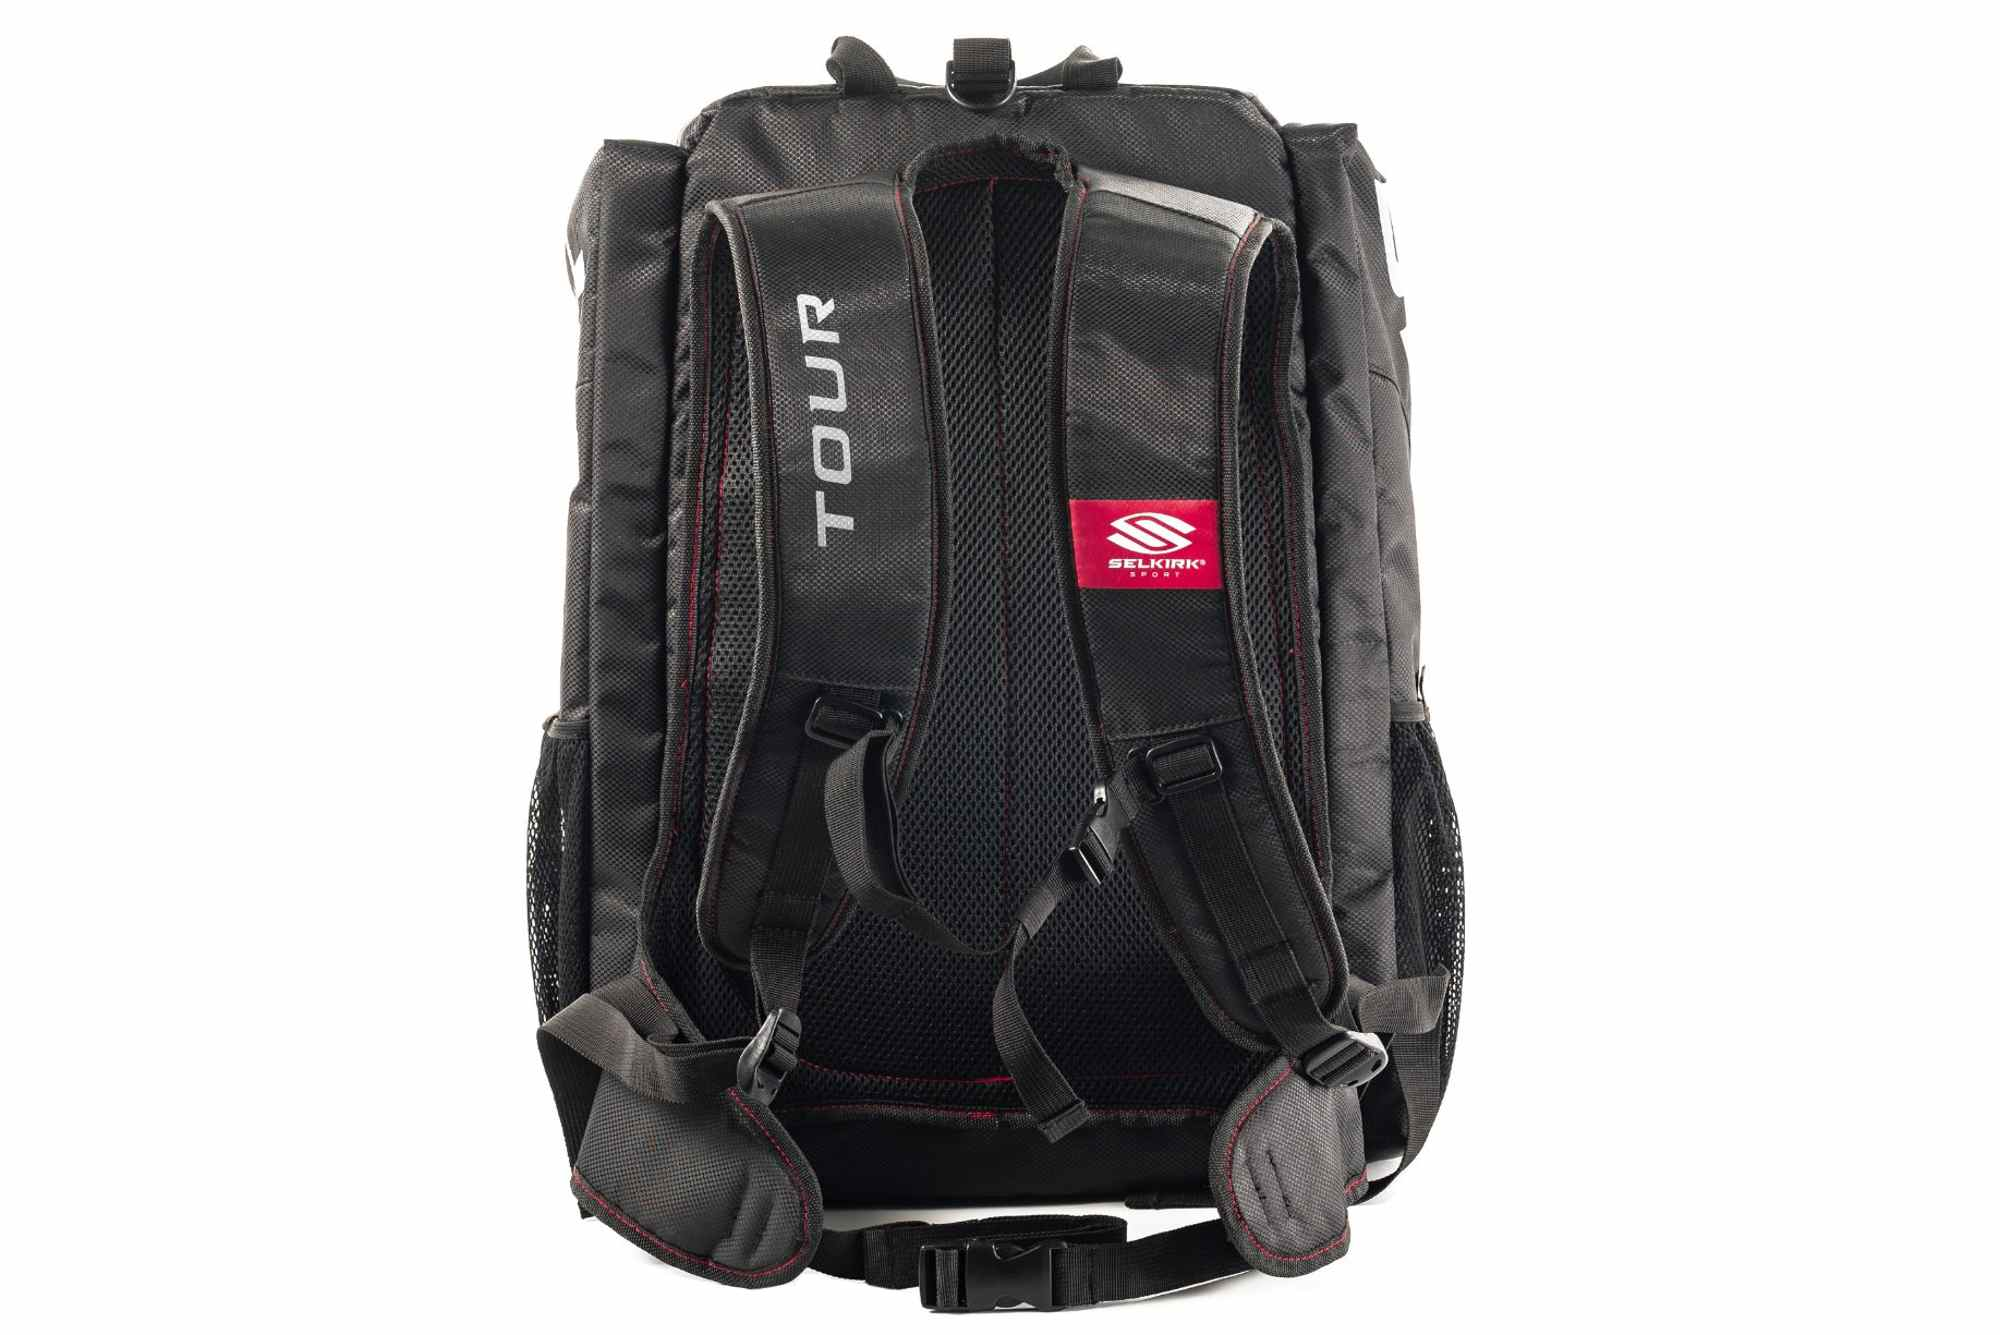 Selkirk Tour Backpack Bag  1fffe9b7eb3a5